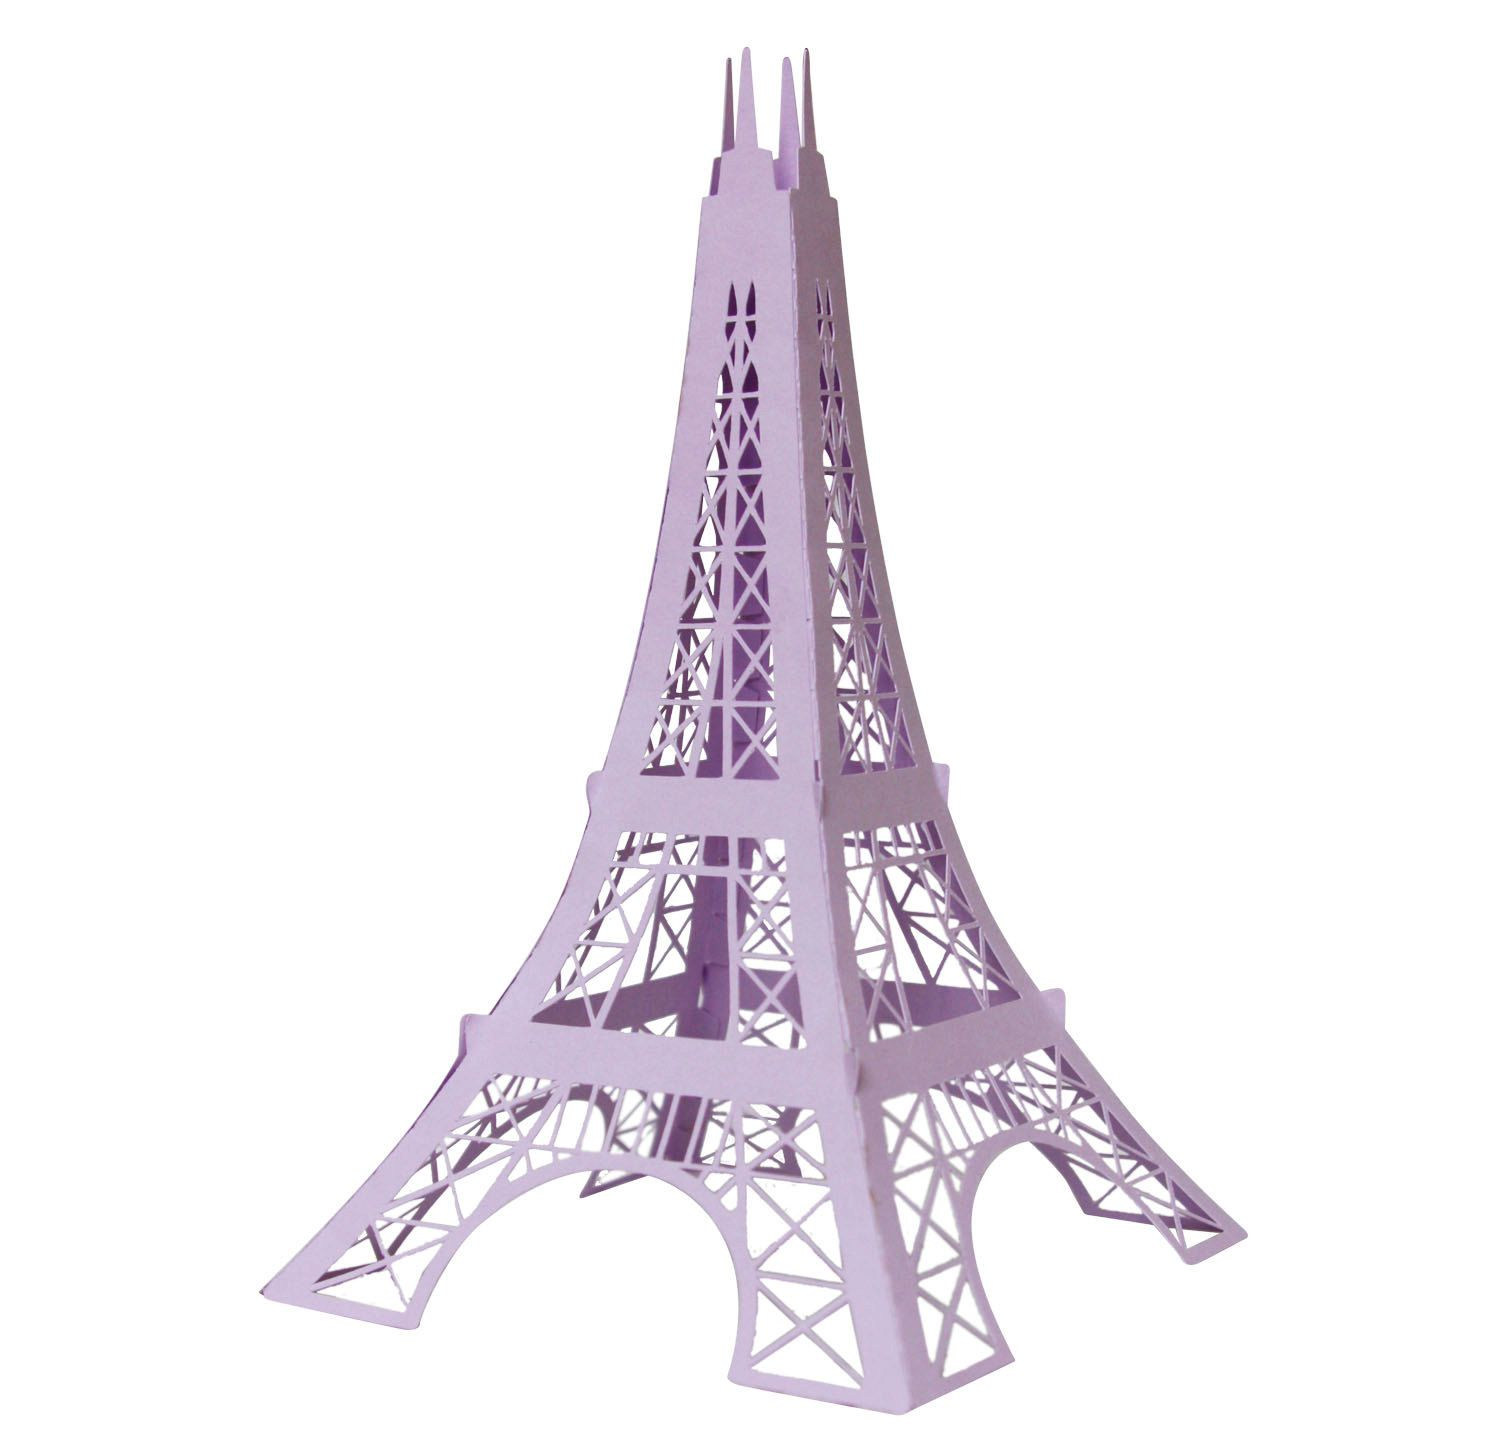 Scrapbook paper eiffel tower - 3d Eiffel Tower Digital Cutting File Svg And Dxf 2 00 Via Etsy